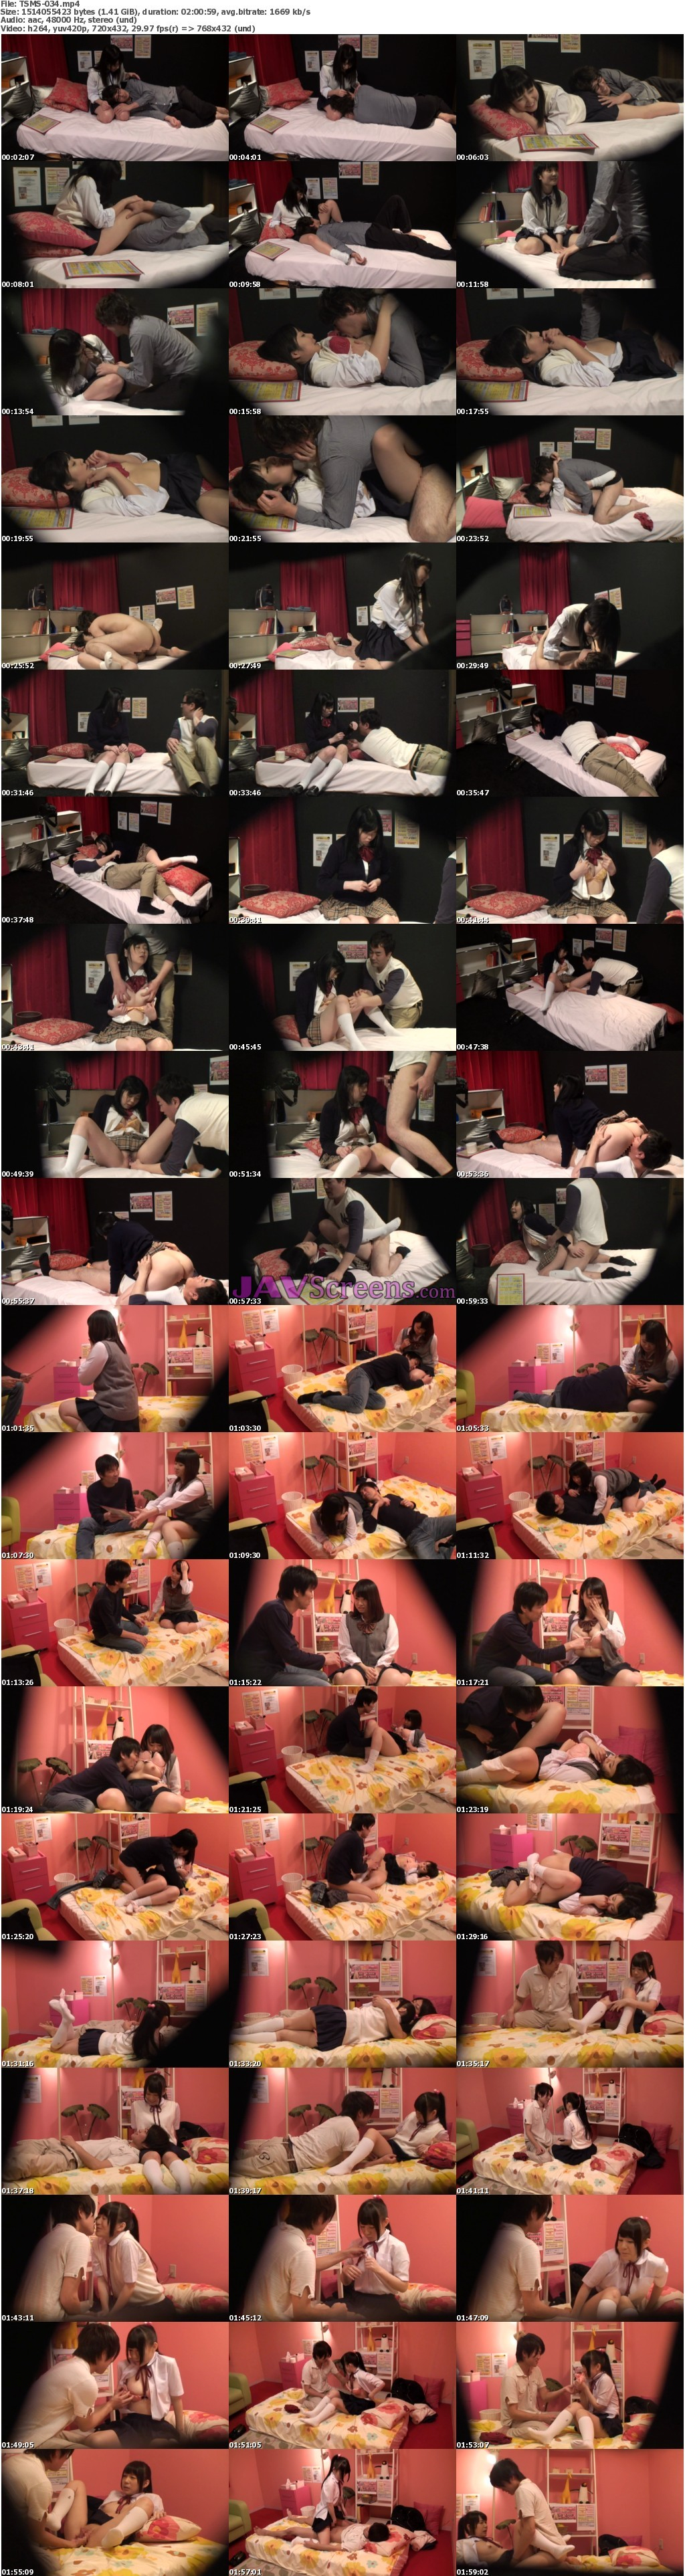 TSMS-034.jpg - JAV Screenshot